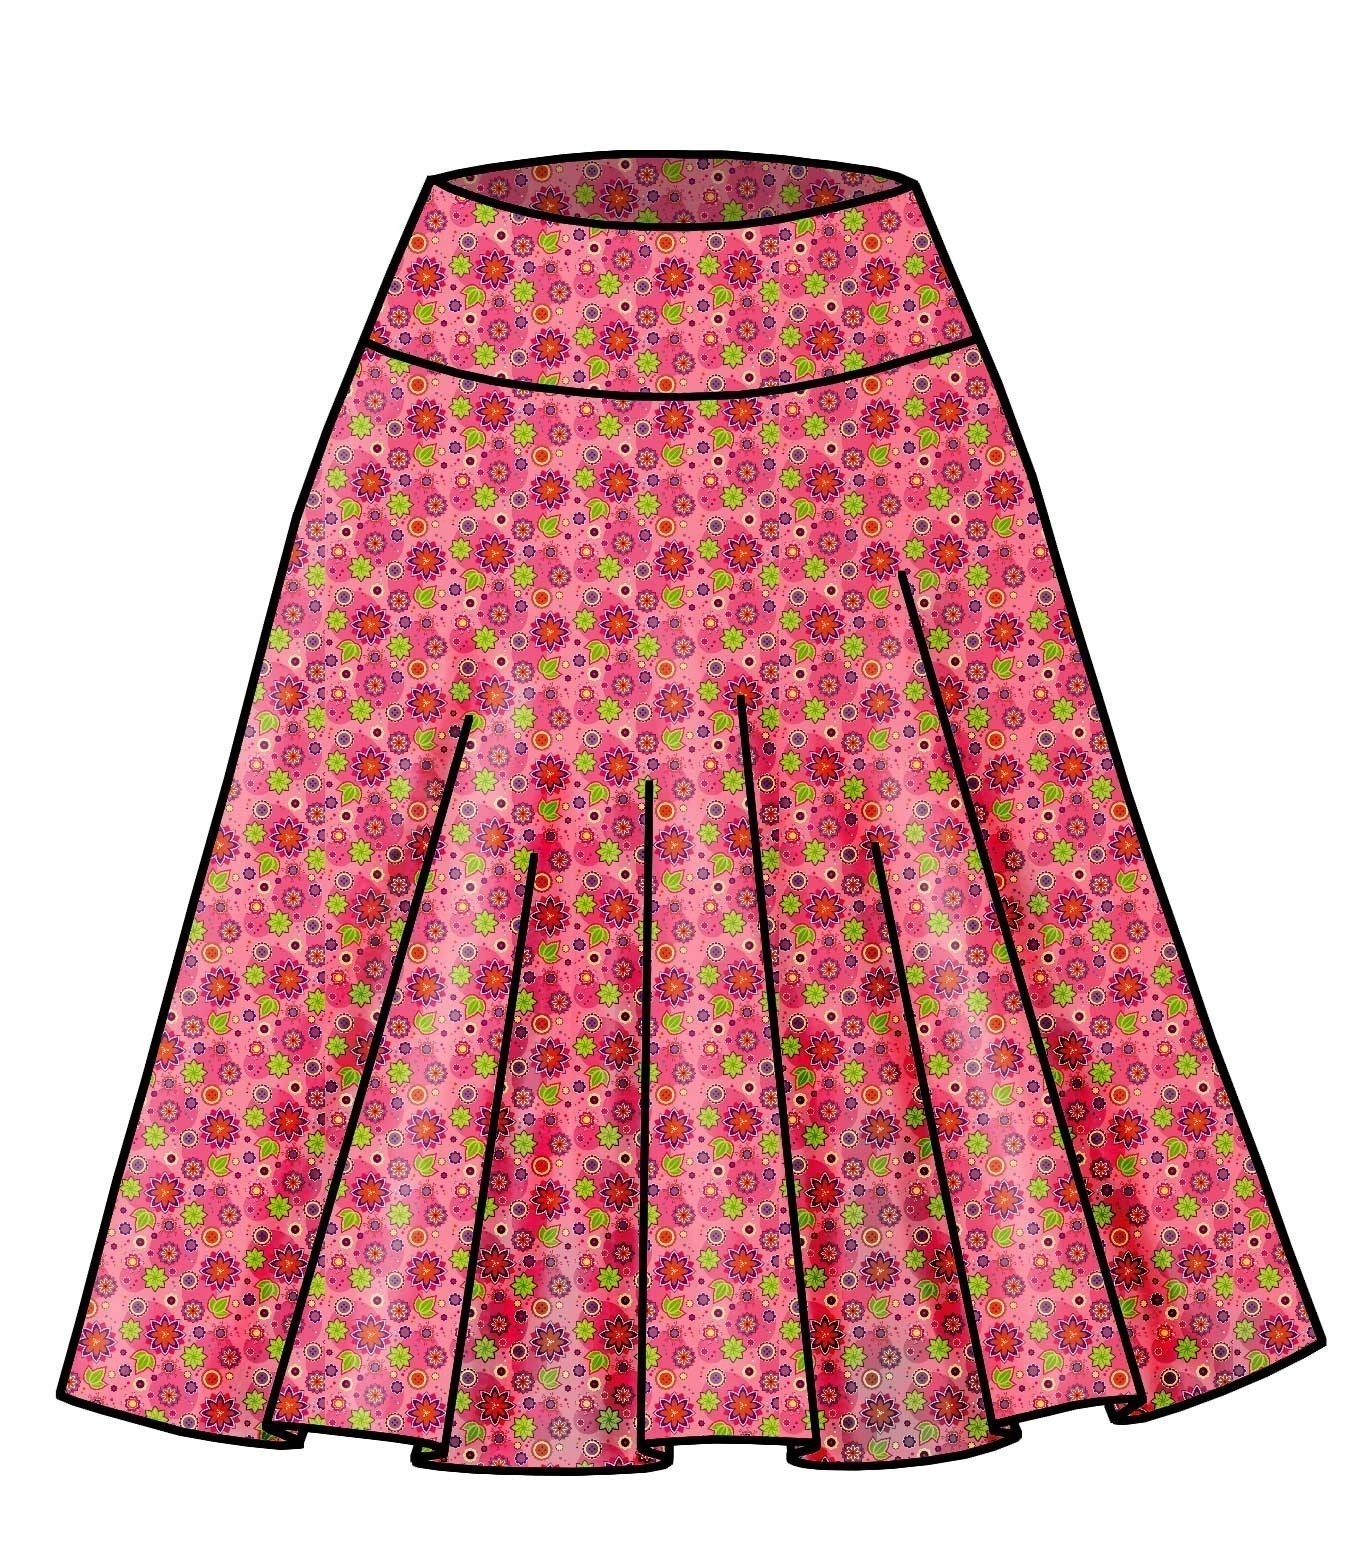 Skirt clipart Unique Skirt Clipart Free Download Clip Art Free Clip.